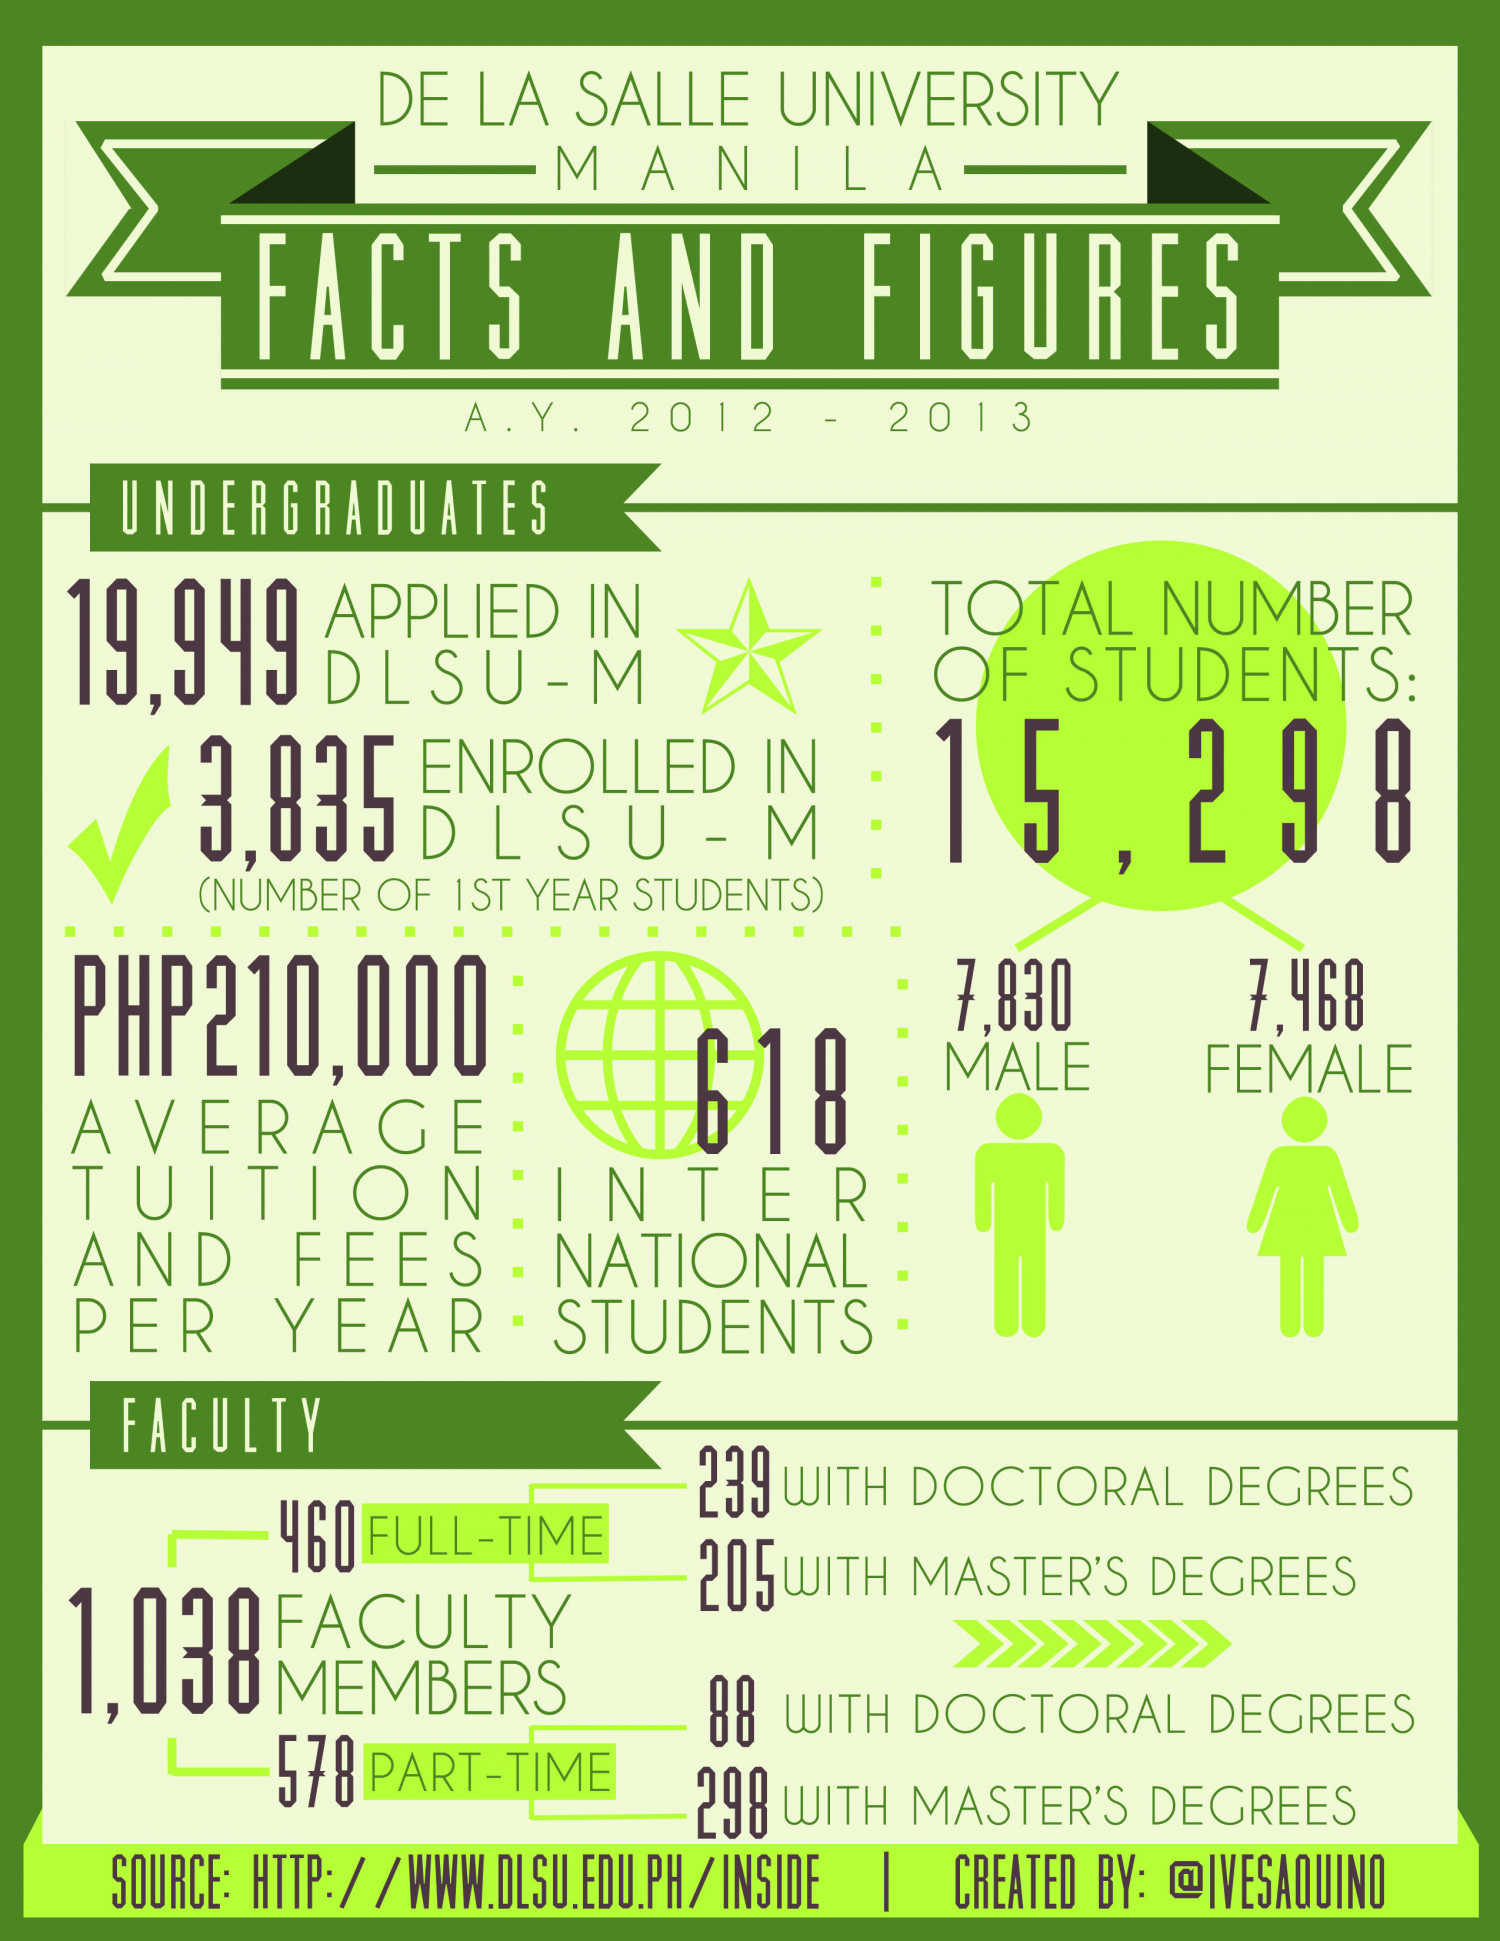 De La Salle University - Manila's Facts and Figures Infographic